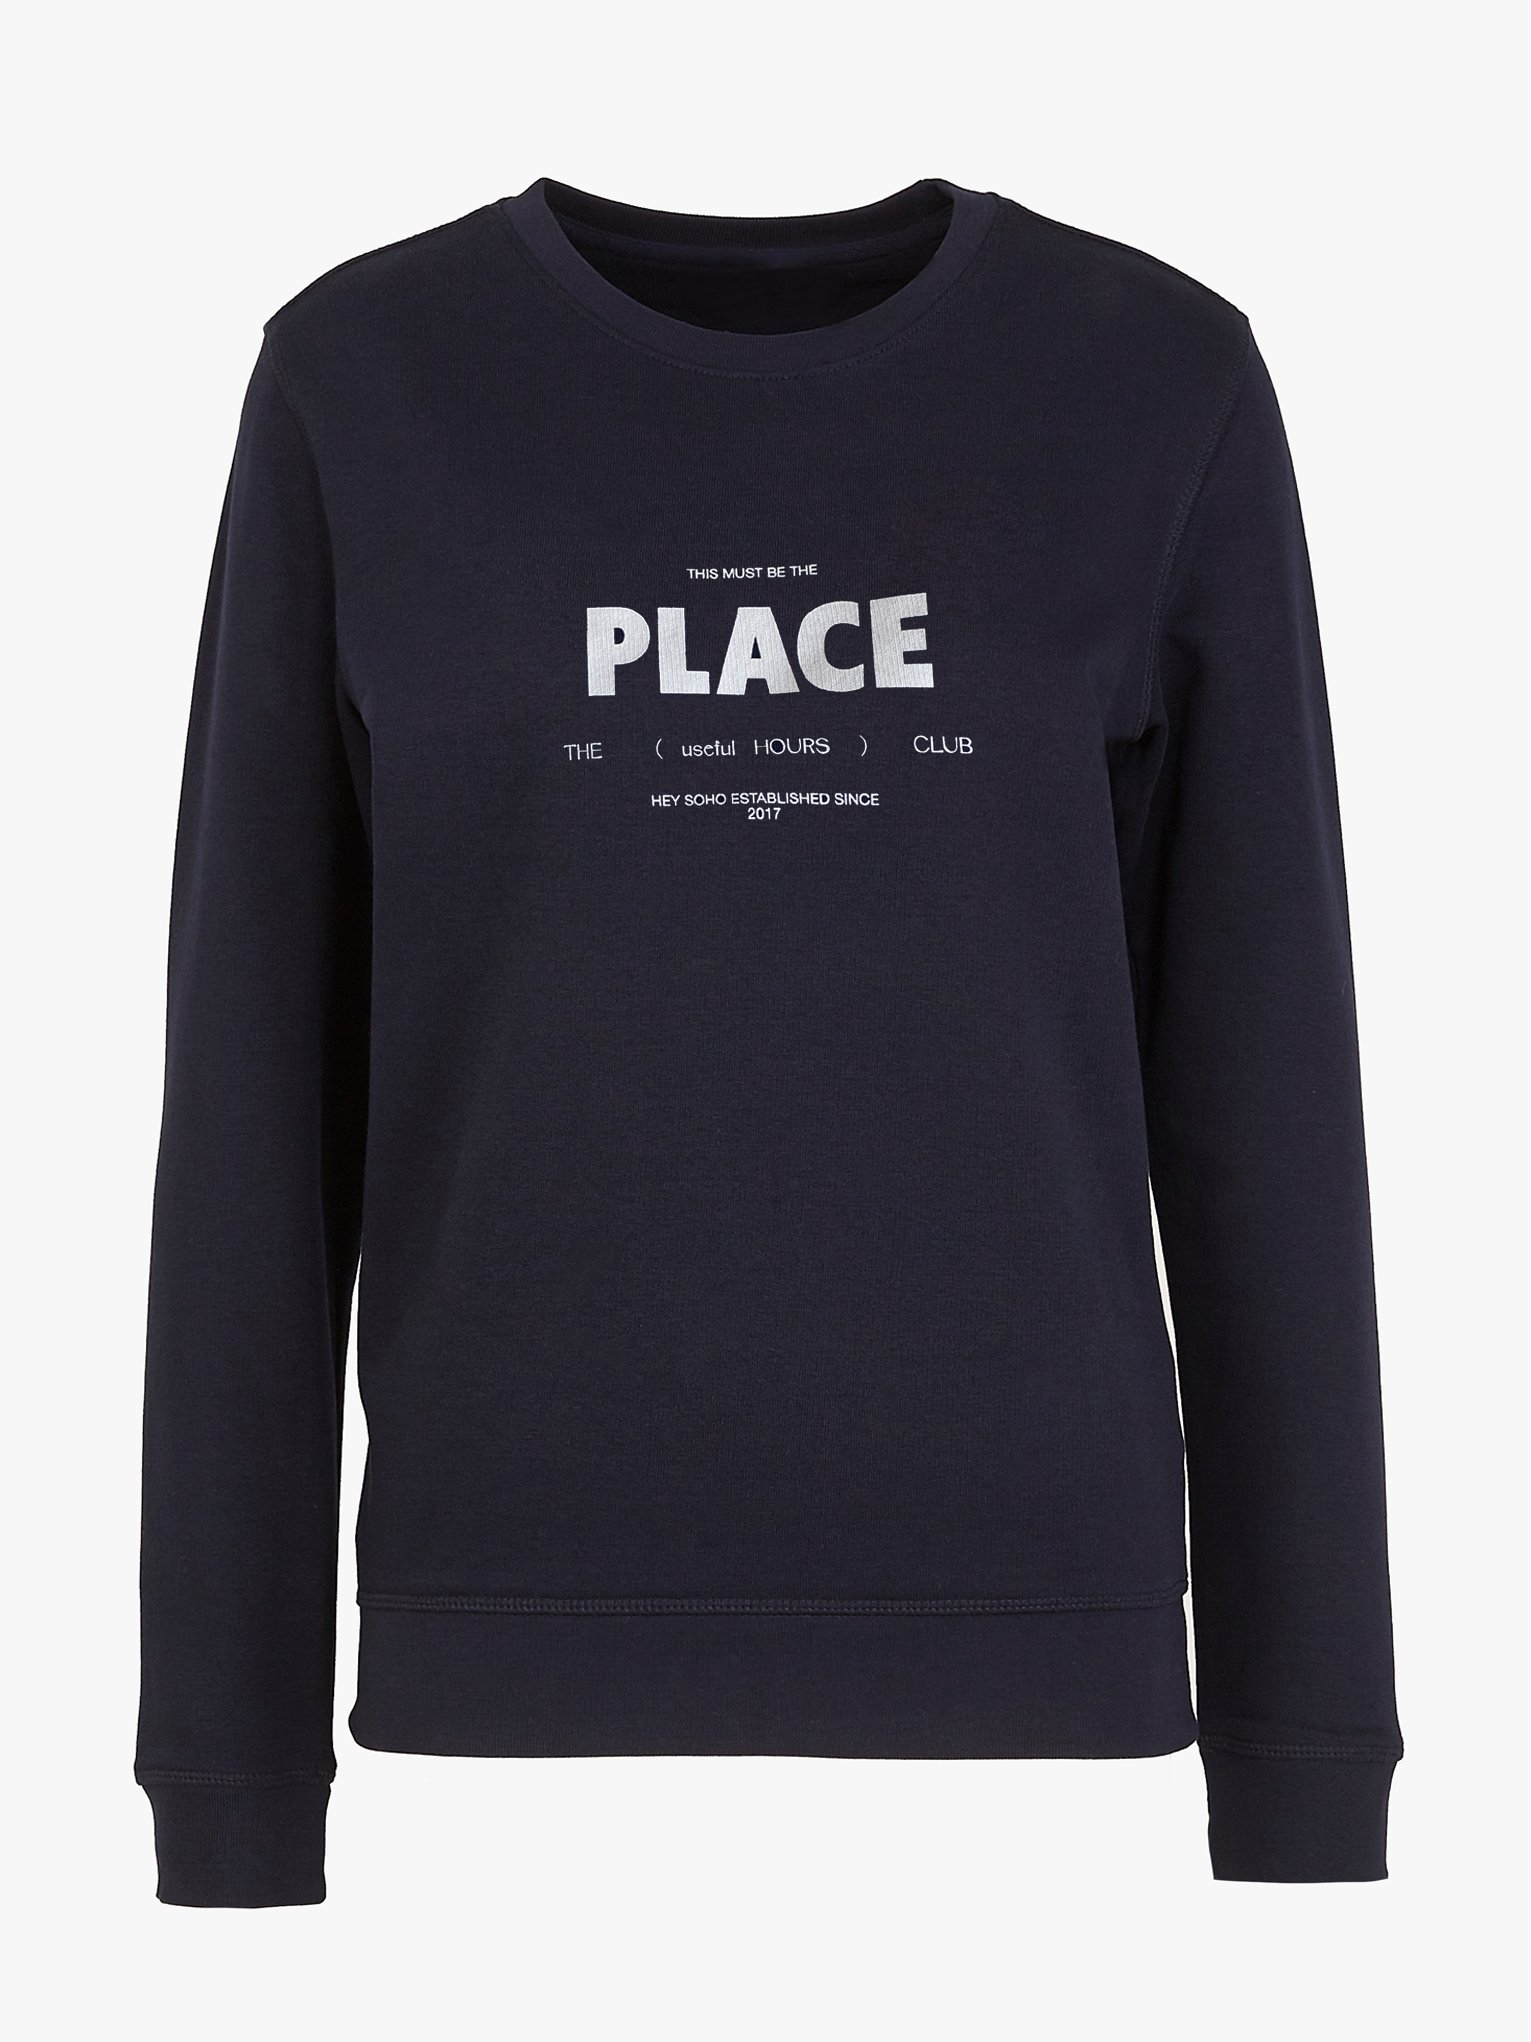 Sweatshirt, Hey Soho, This must be the place